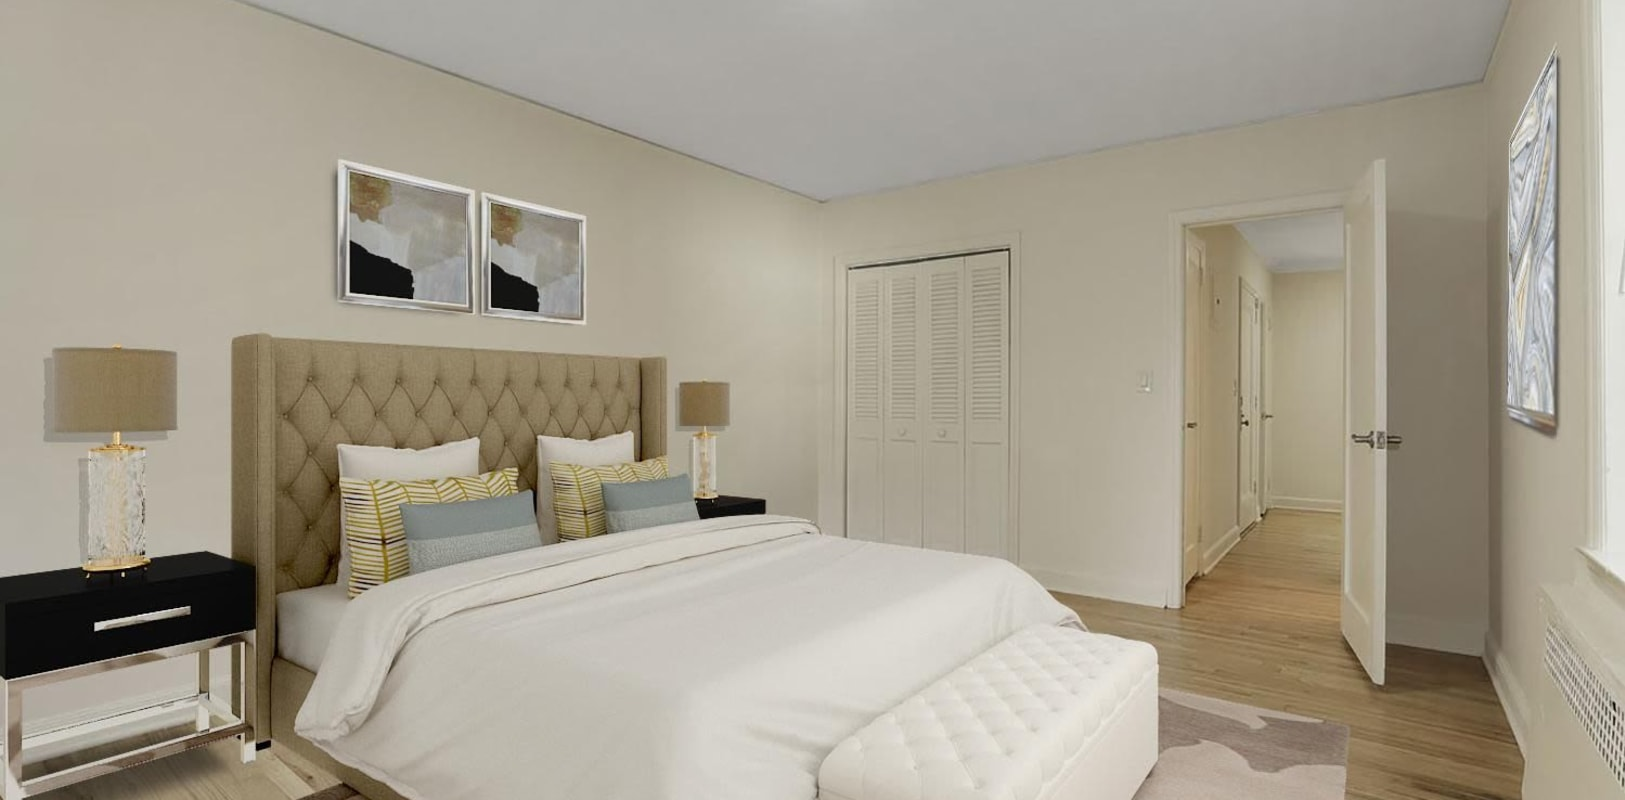 Cozy bedroom at Mayflower Apartments in Ridgewood, New Jersey